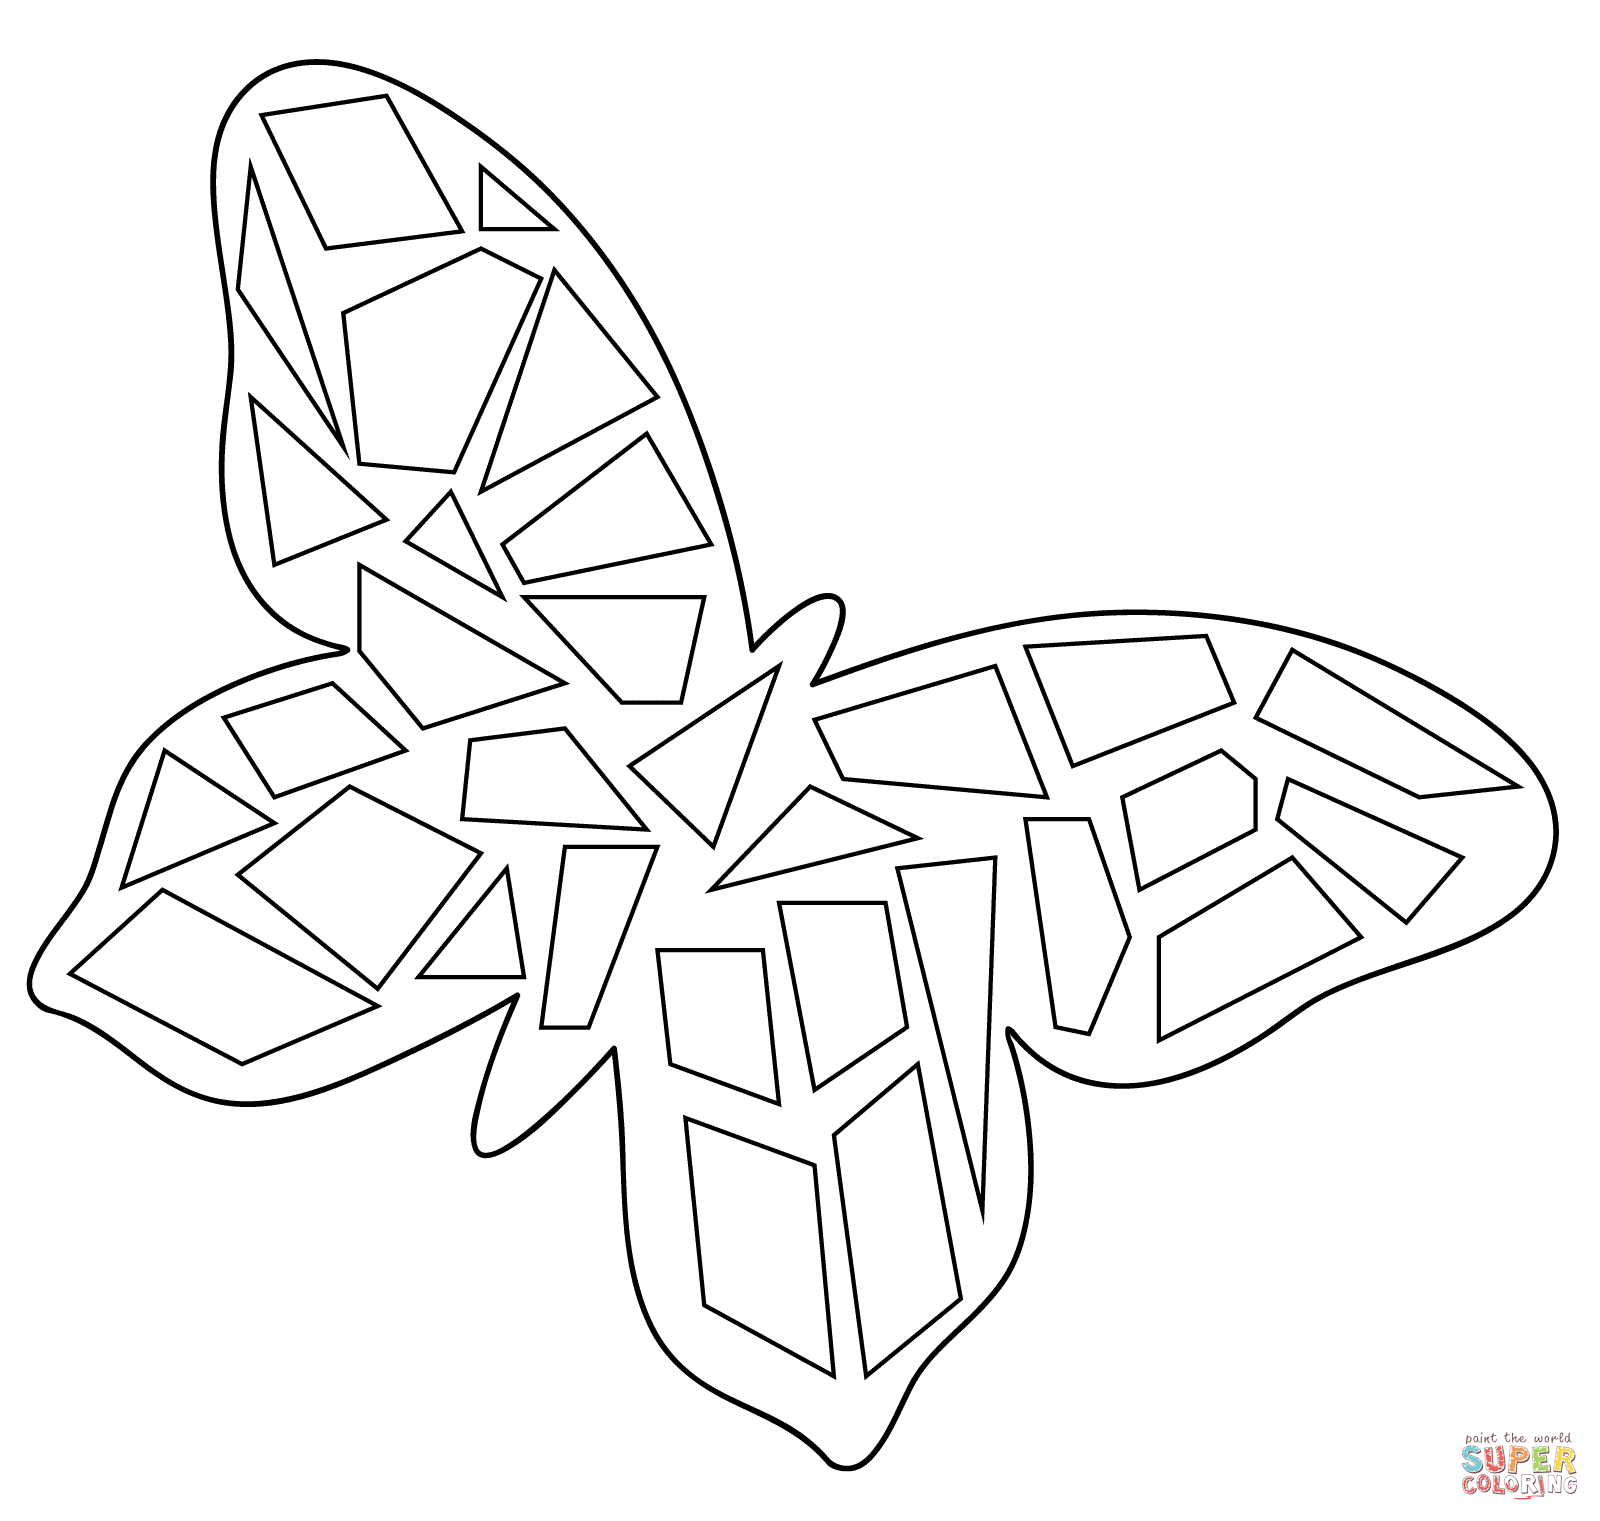 Butterfly Mosaic Coloring Page Free Printable Coloring Pages